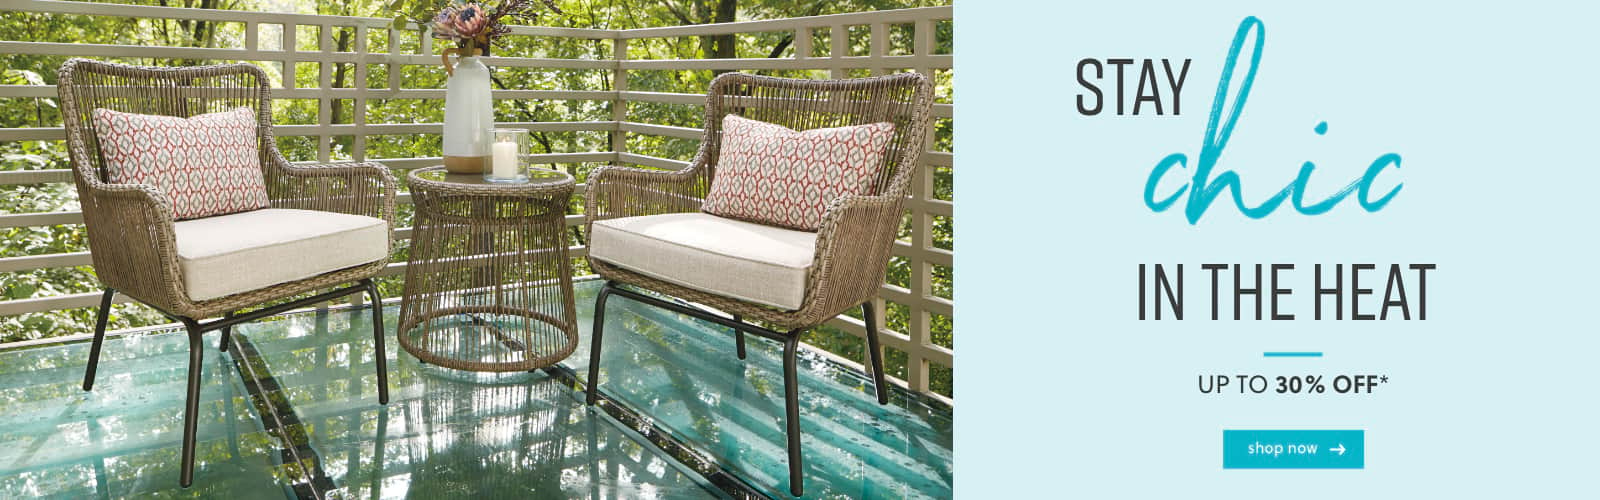 Table Lounge Garden Furniture Couch Rattan Png Download 1500 Ashley Furniture Homestore Home Furniture Decor